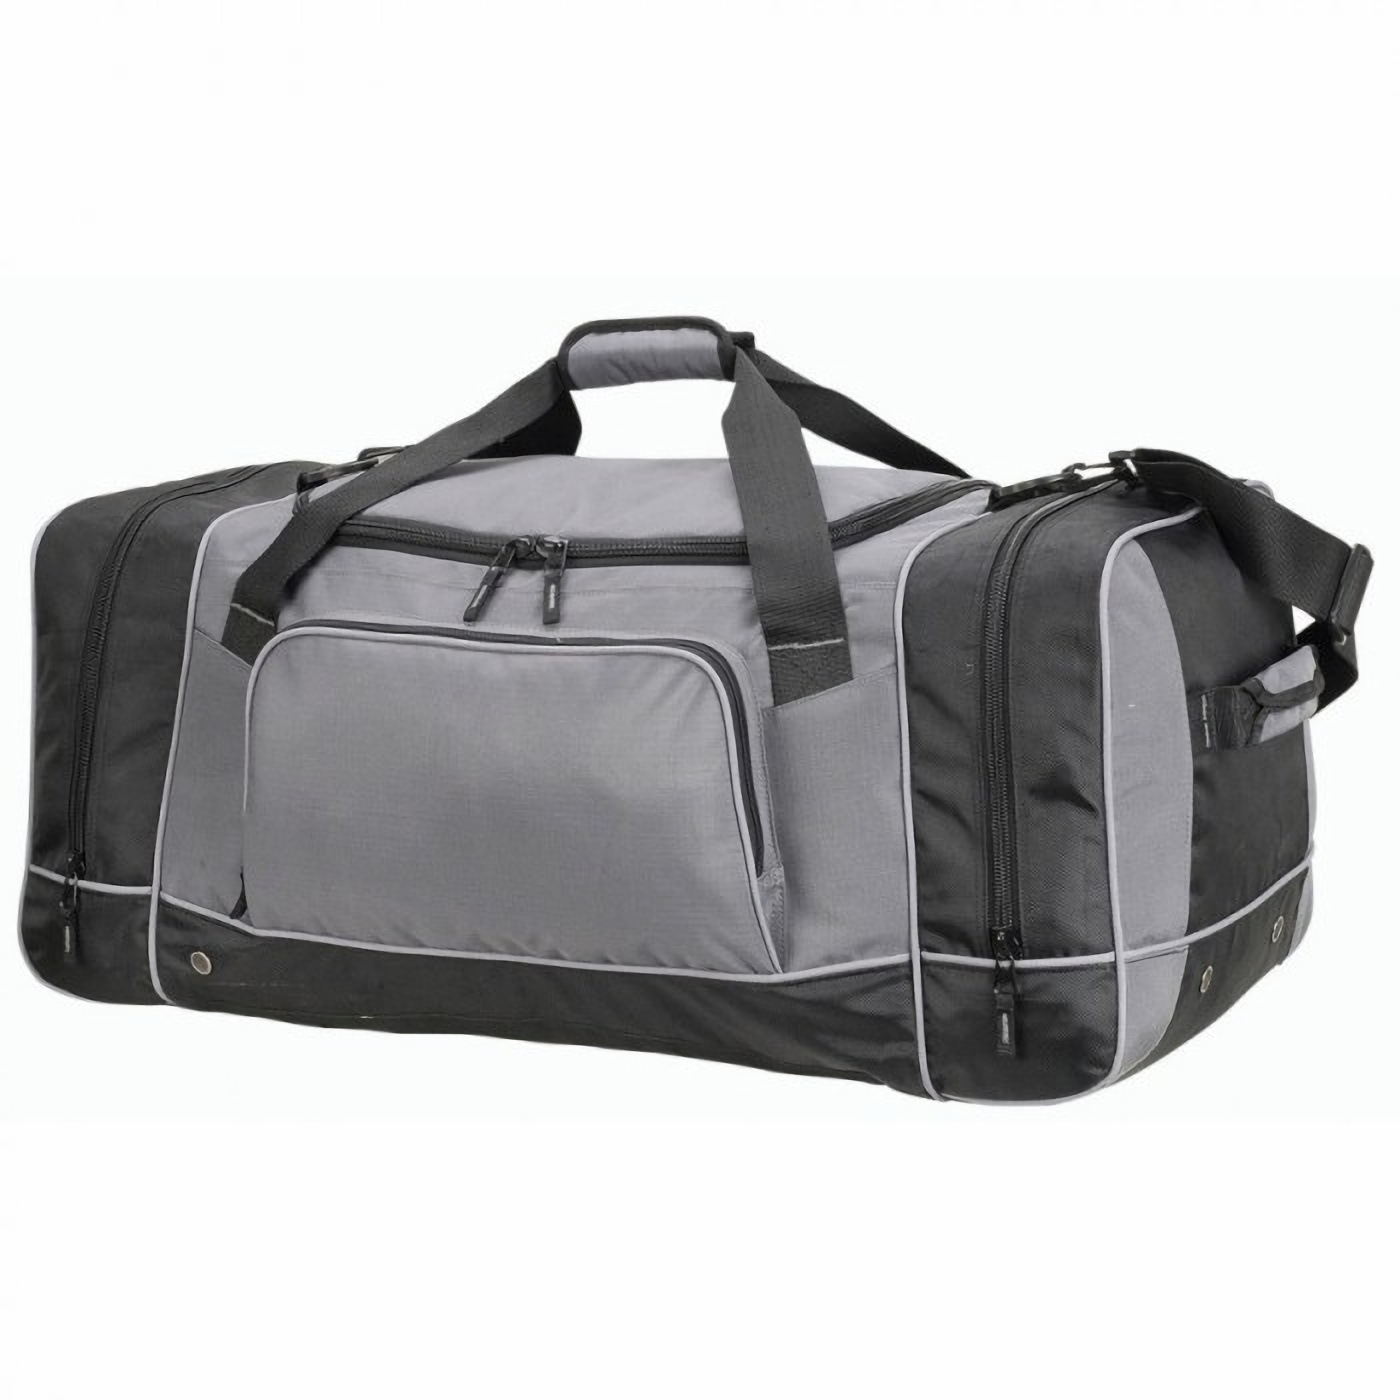 Shugon Chicago Giant Holdall Bag / Duffle Bag (93 Litres) (One Size) (Grey/Black)